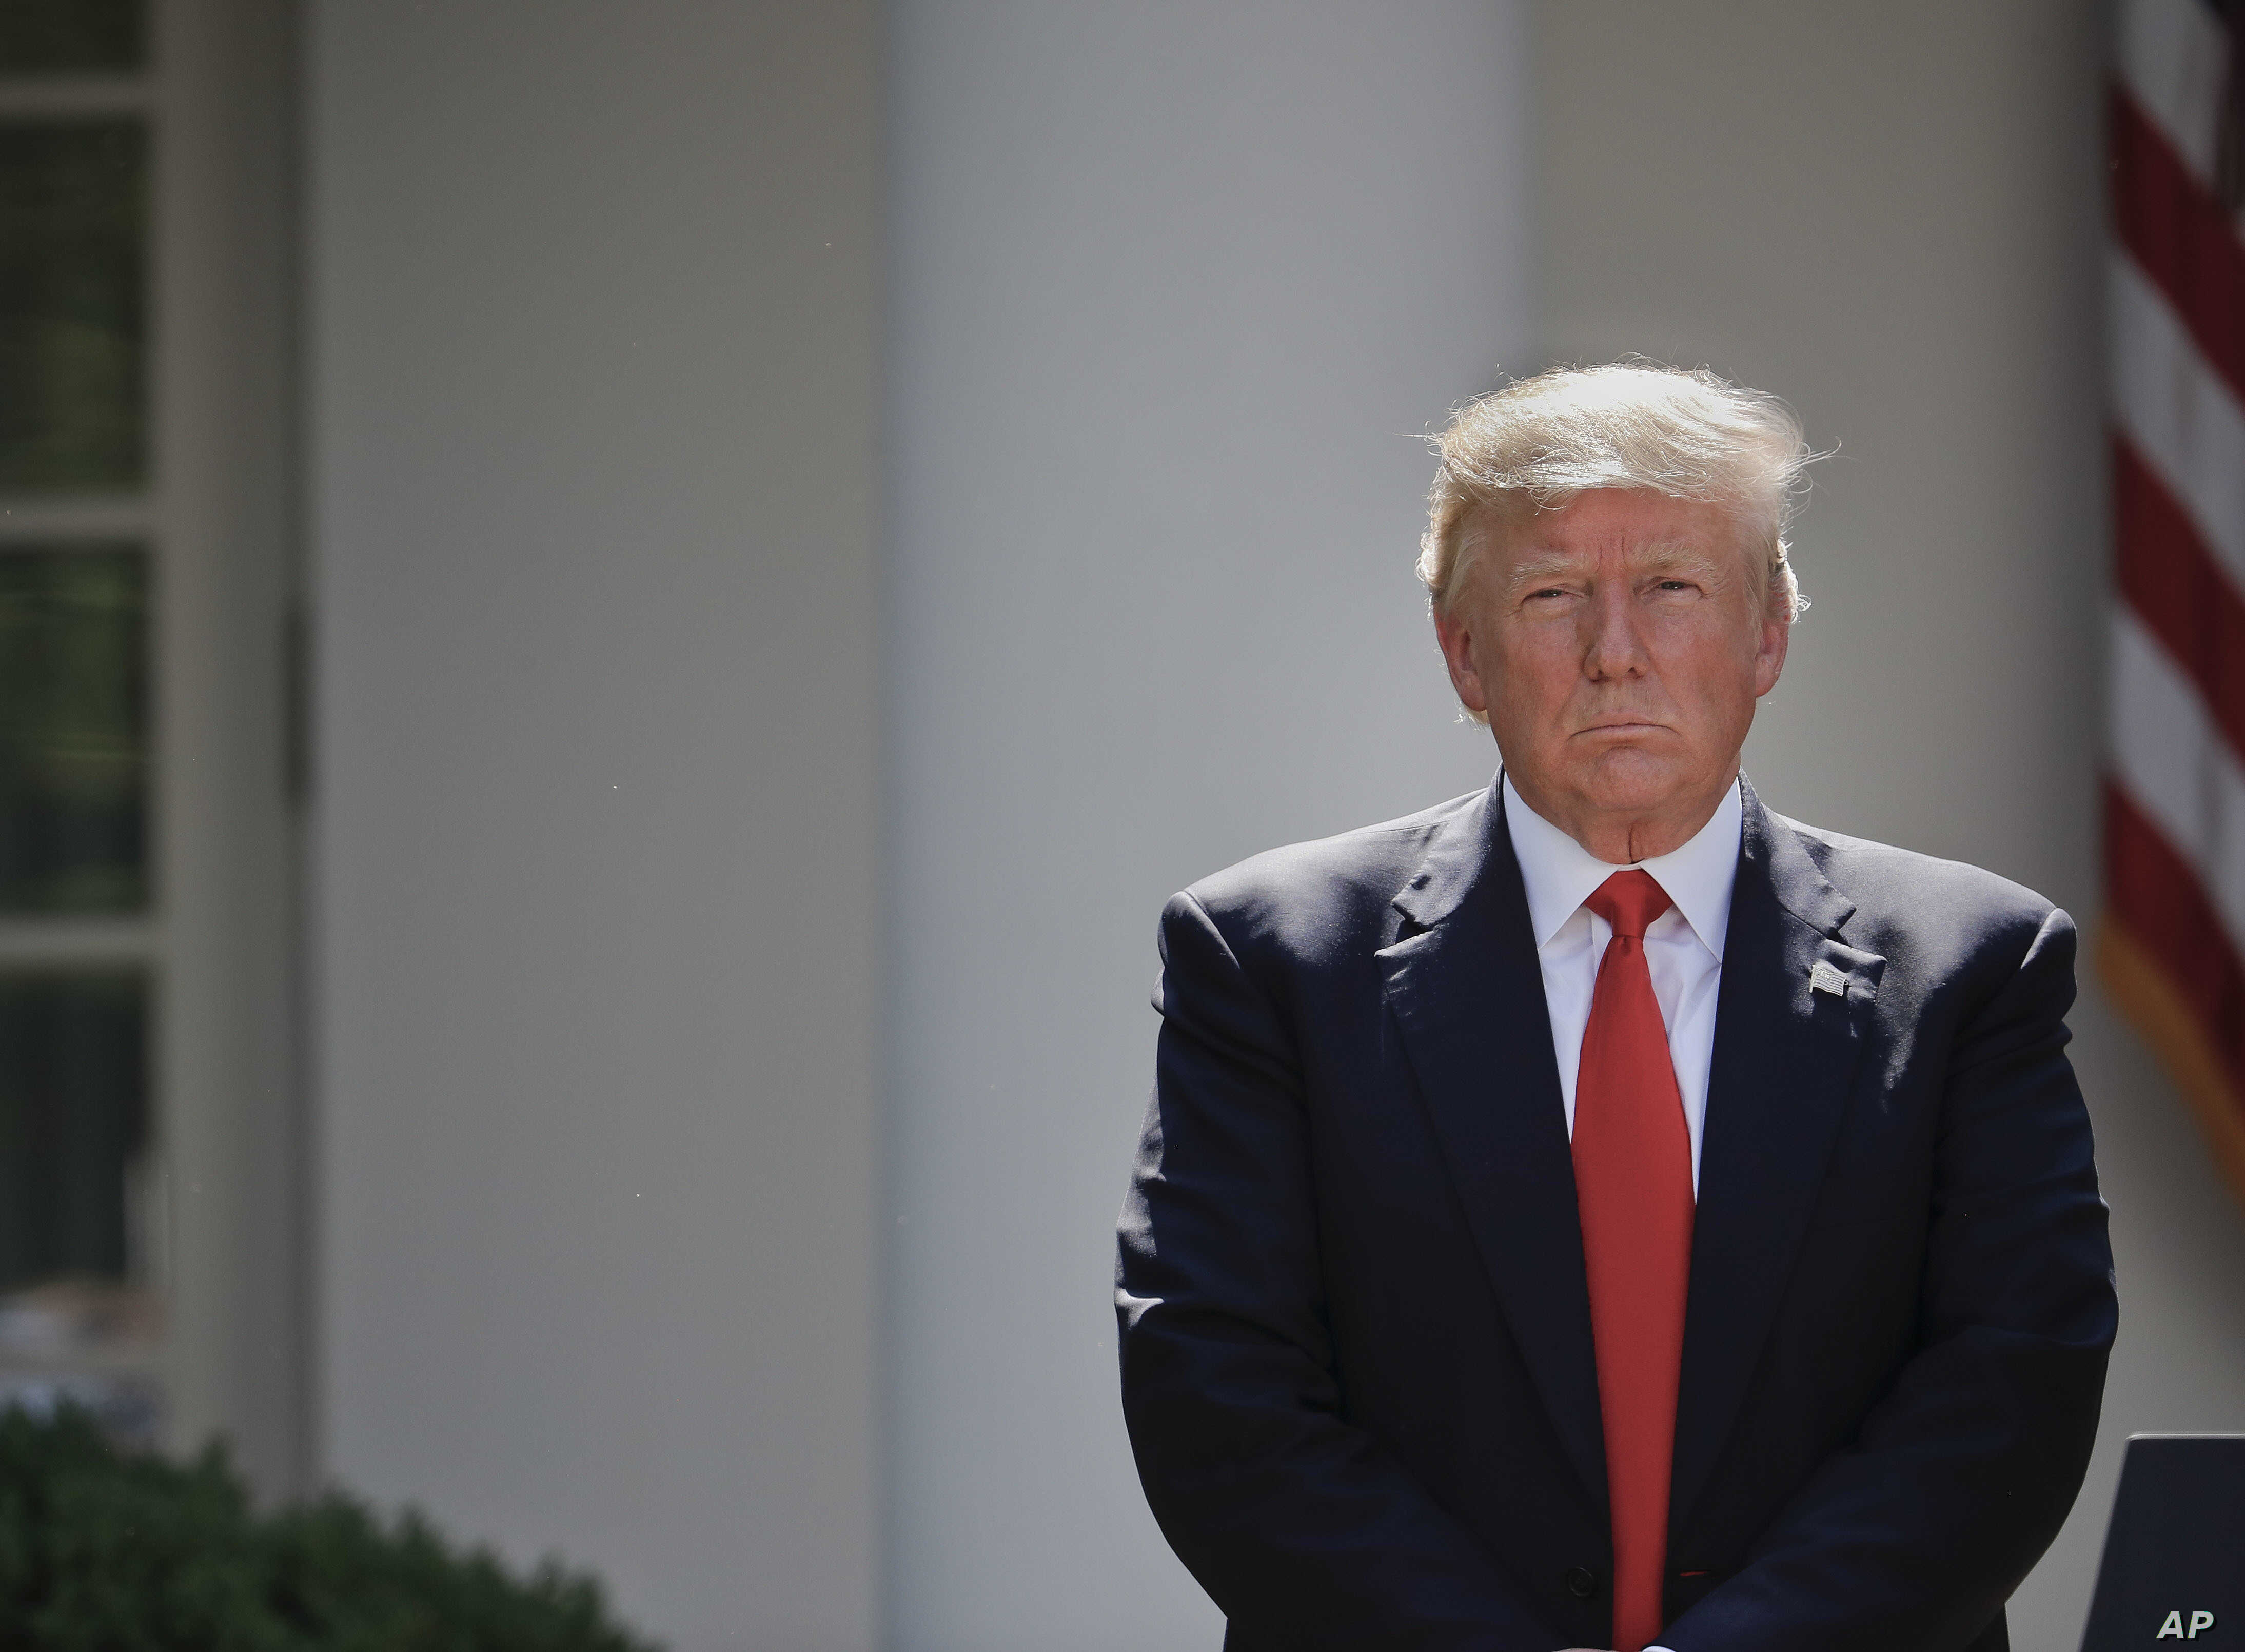 President Donald Trump stands next to the podium after speaking about the U.S. role in the Paris climate change accord in the Rose Garden of the White House in Washington, June 1, 2017.